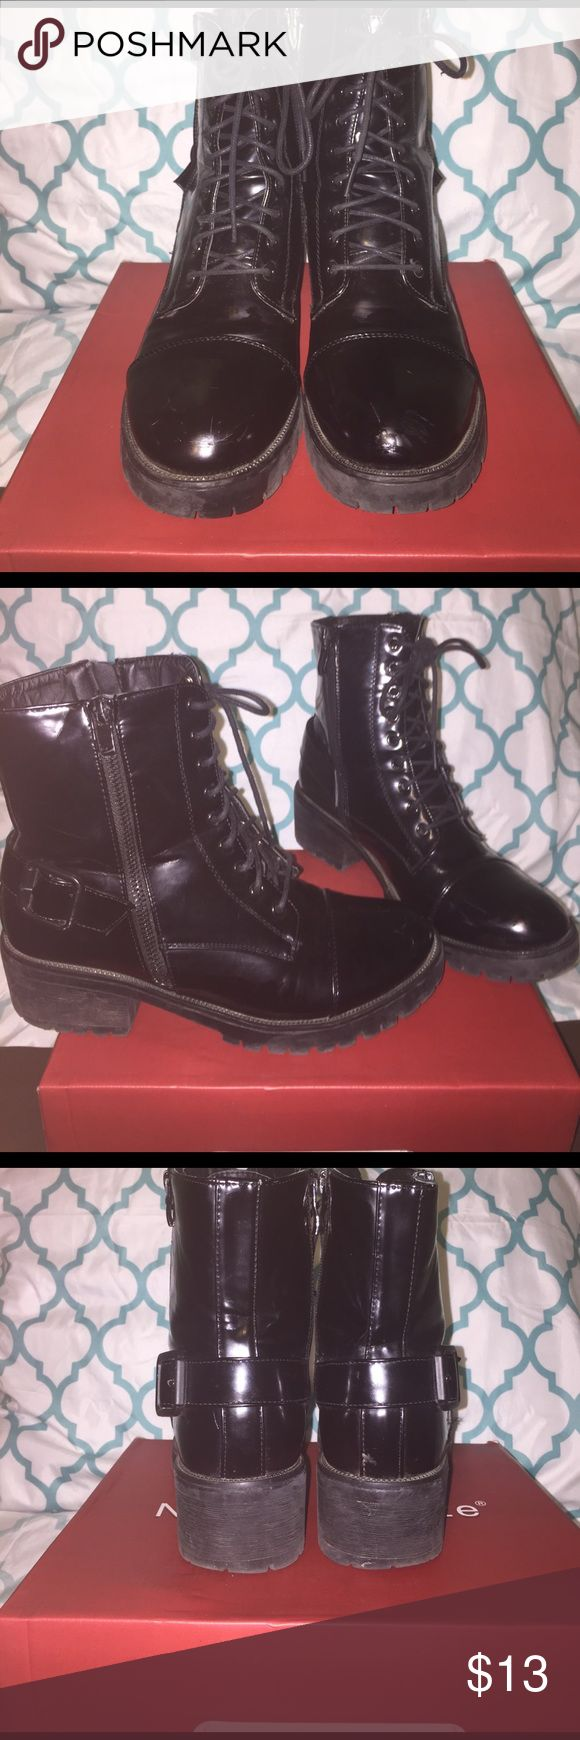 Black glossy combat boots Law enforcer 01 , black pumps, size 8.5, has sign of wear, no major scuffs or scrapes. Glossy black with buckle and a zipper for decoration. Nature Breeze Shoes Combat & Moto Boots